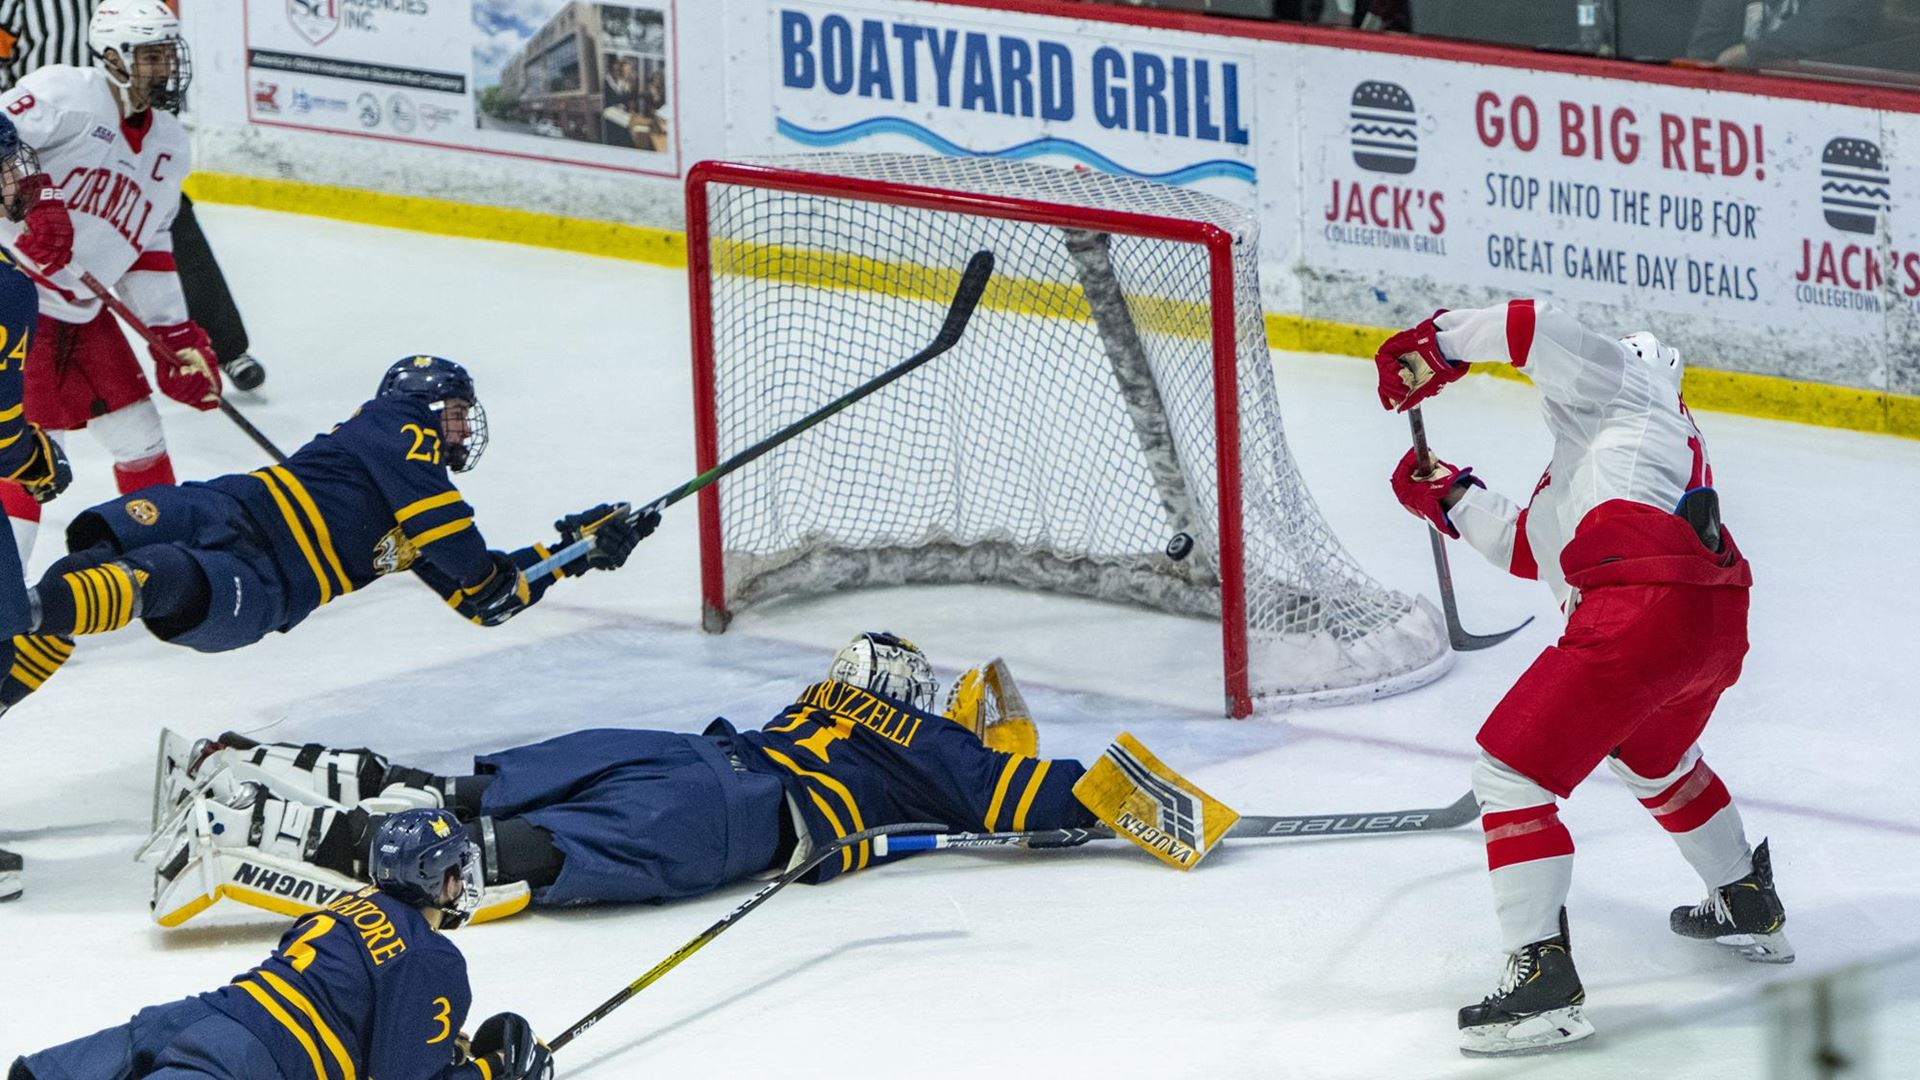 Cornell improves to 7-0 with win over Quinnipiac